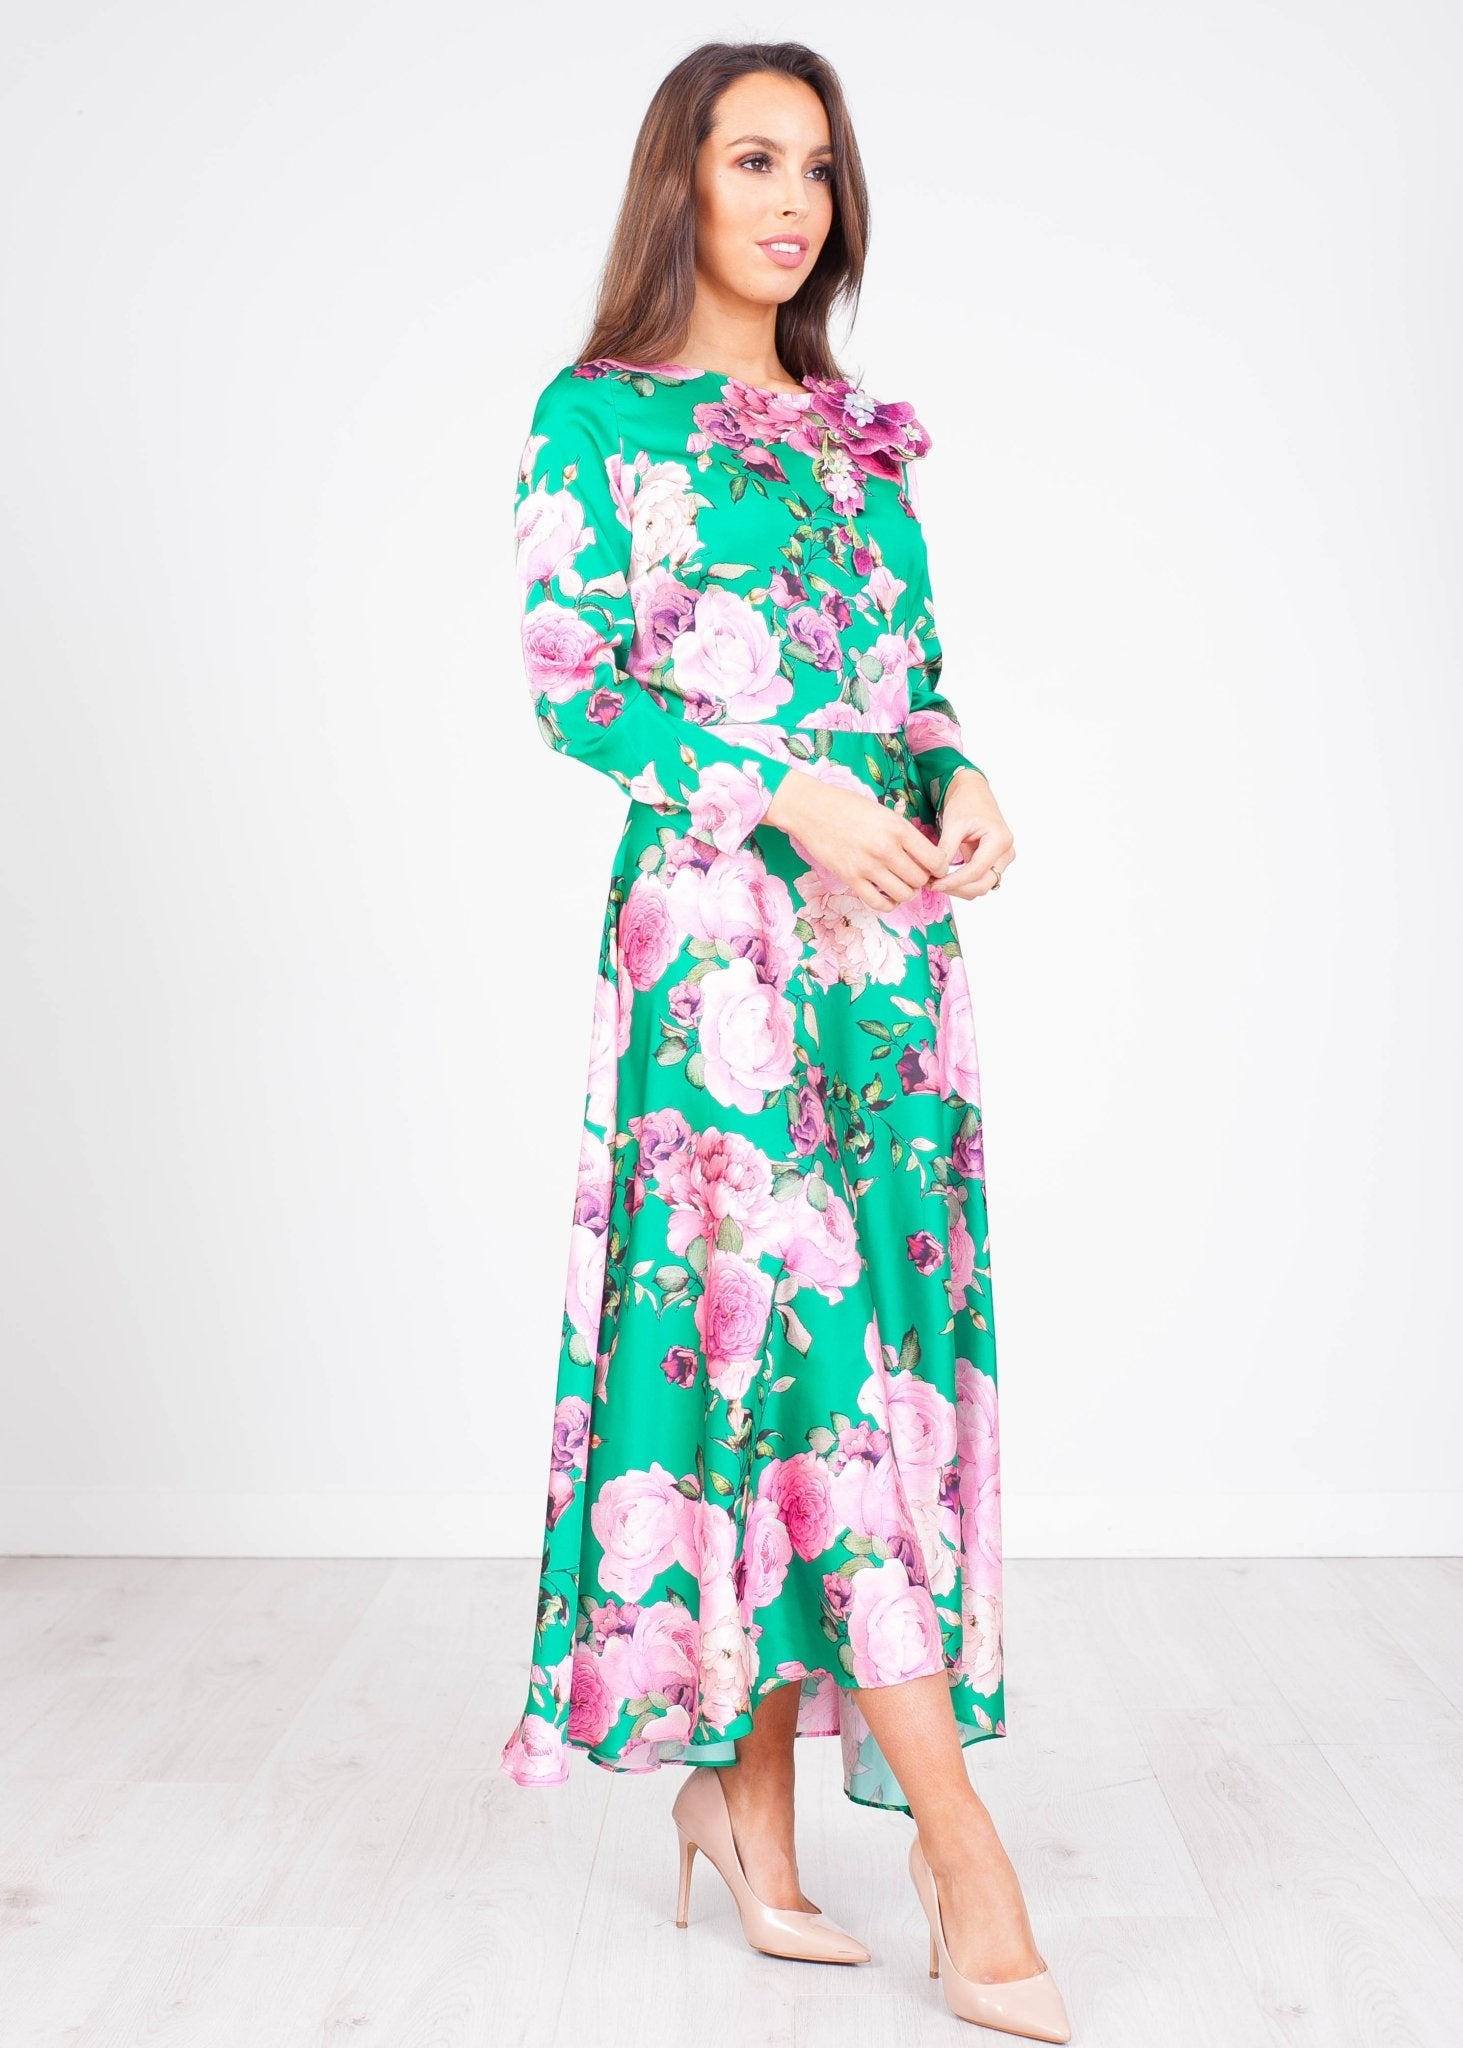 Matilda Green & Pink Dress - The Walk in Wardrobe